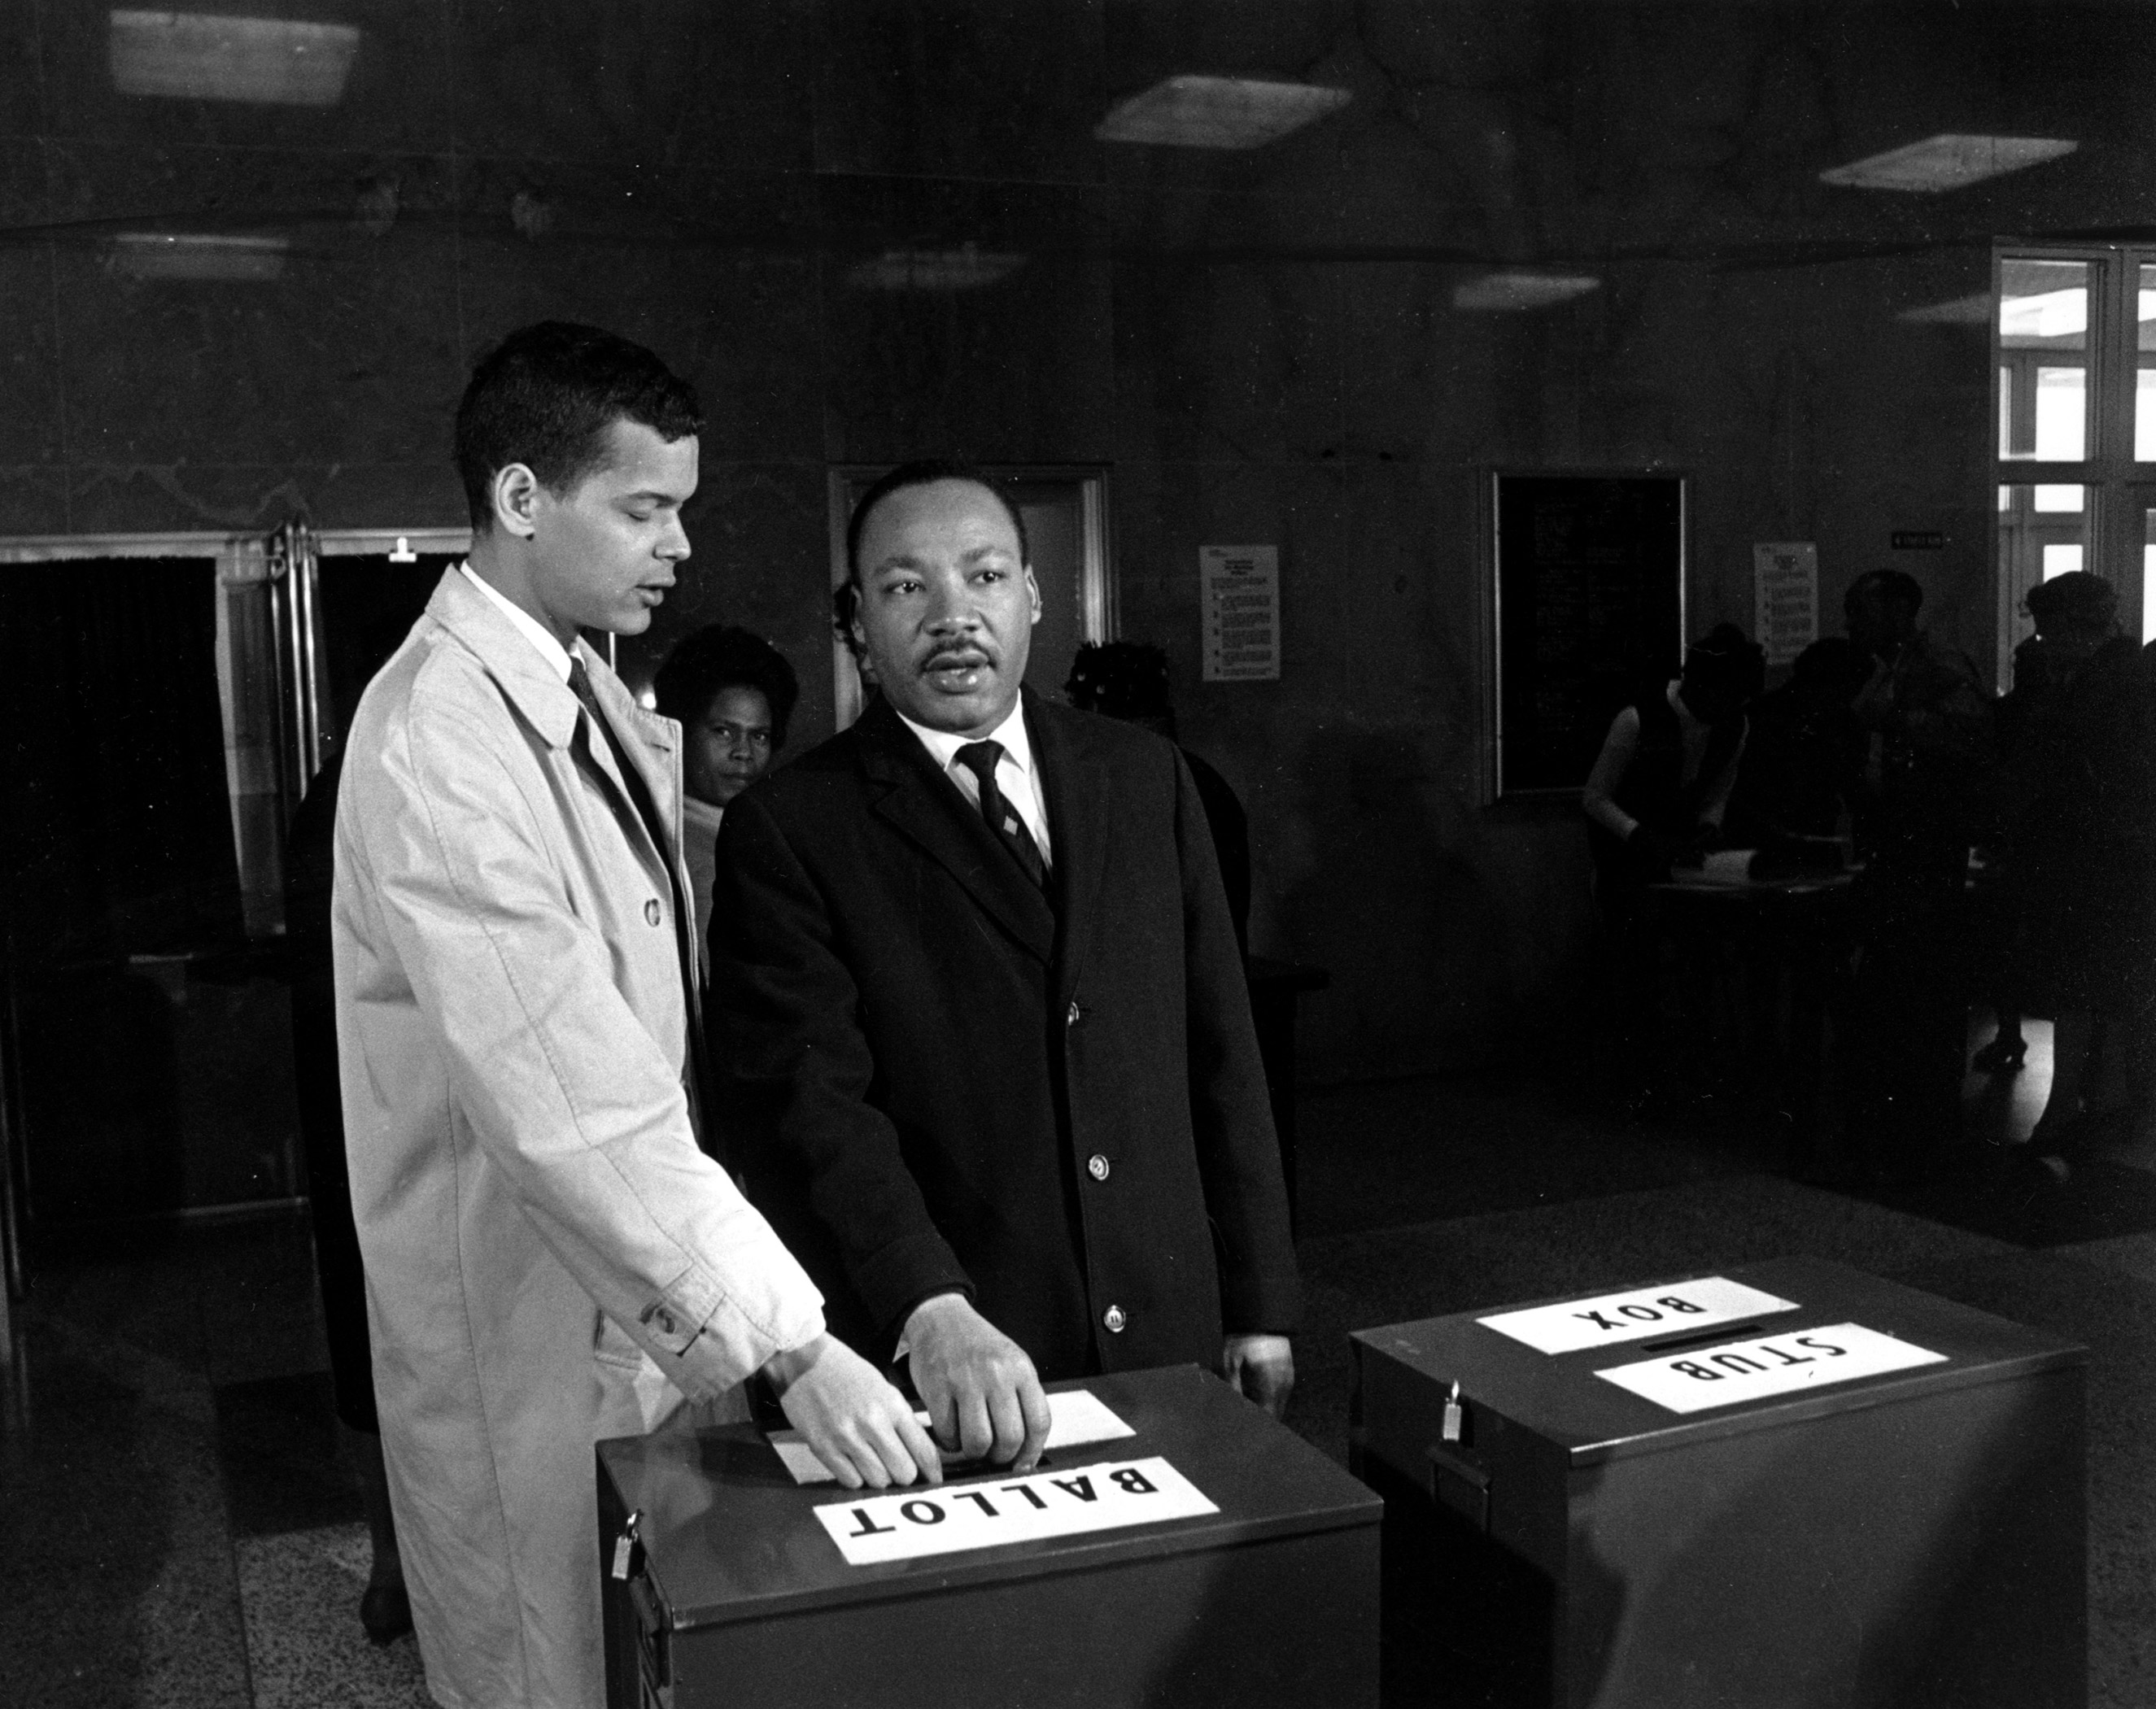 Julian Bond and Dr. Martin Luther King Jr. cast their ballots to fill Bond's vacant seat in the U.S. House of Representatives in Atlanta on Feb. 23, 1966.